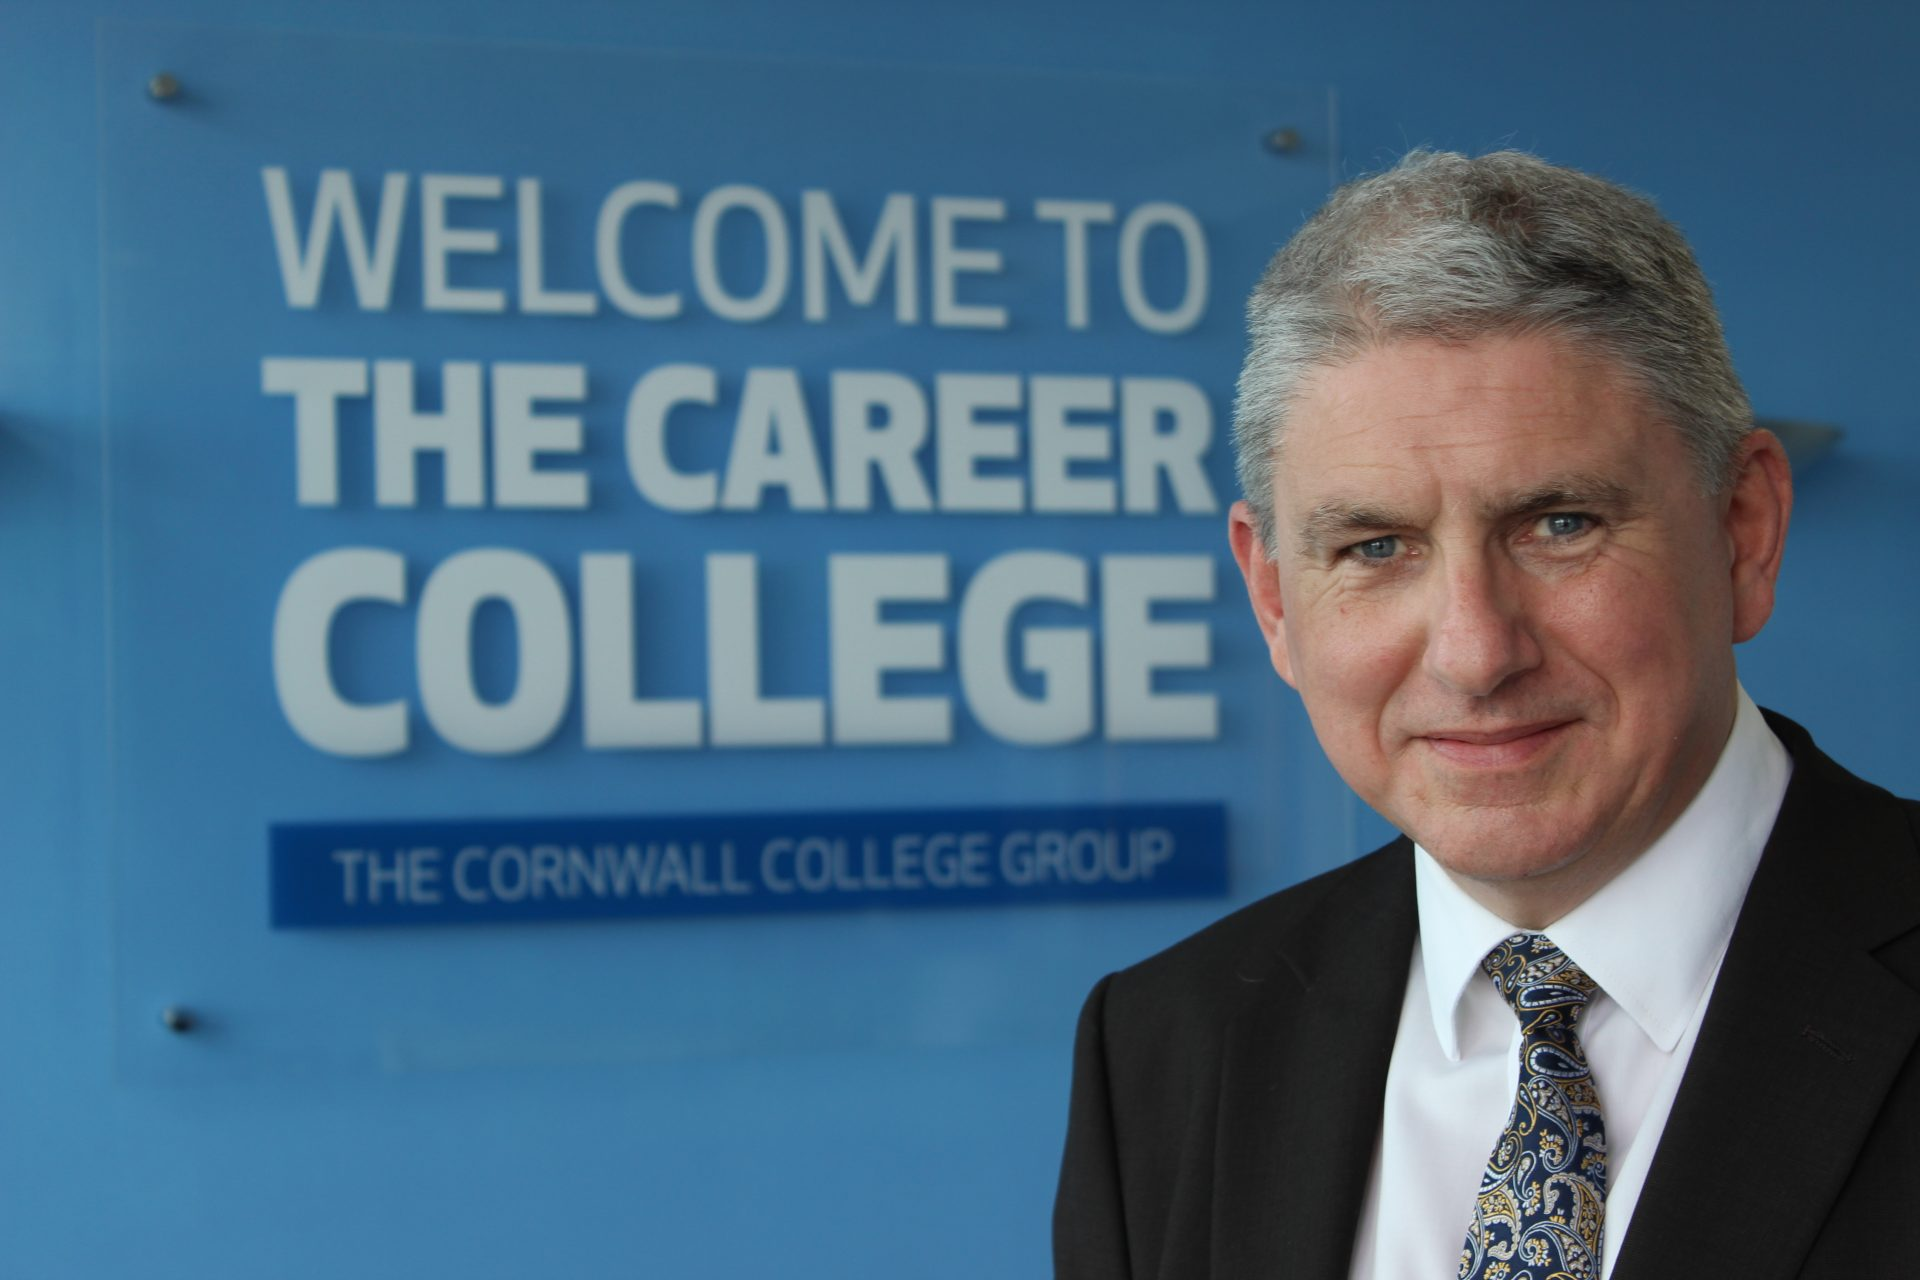 Ofsted awards The Cornwall College Group highest judgement – significant progress – following monitoring visit